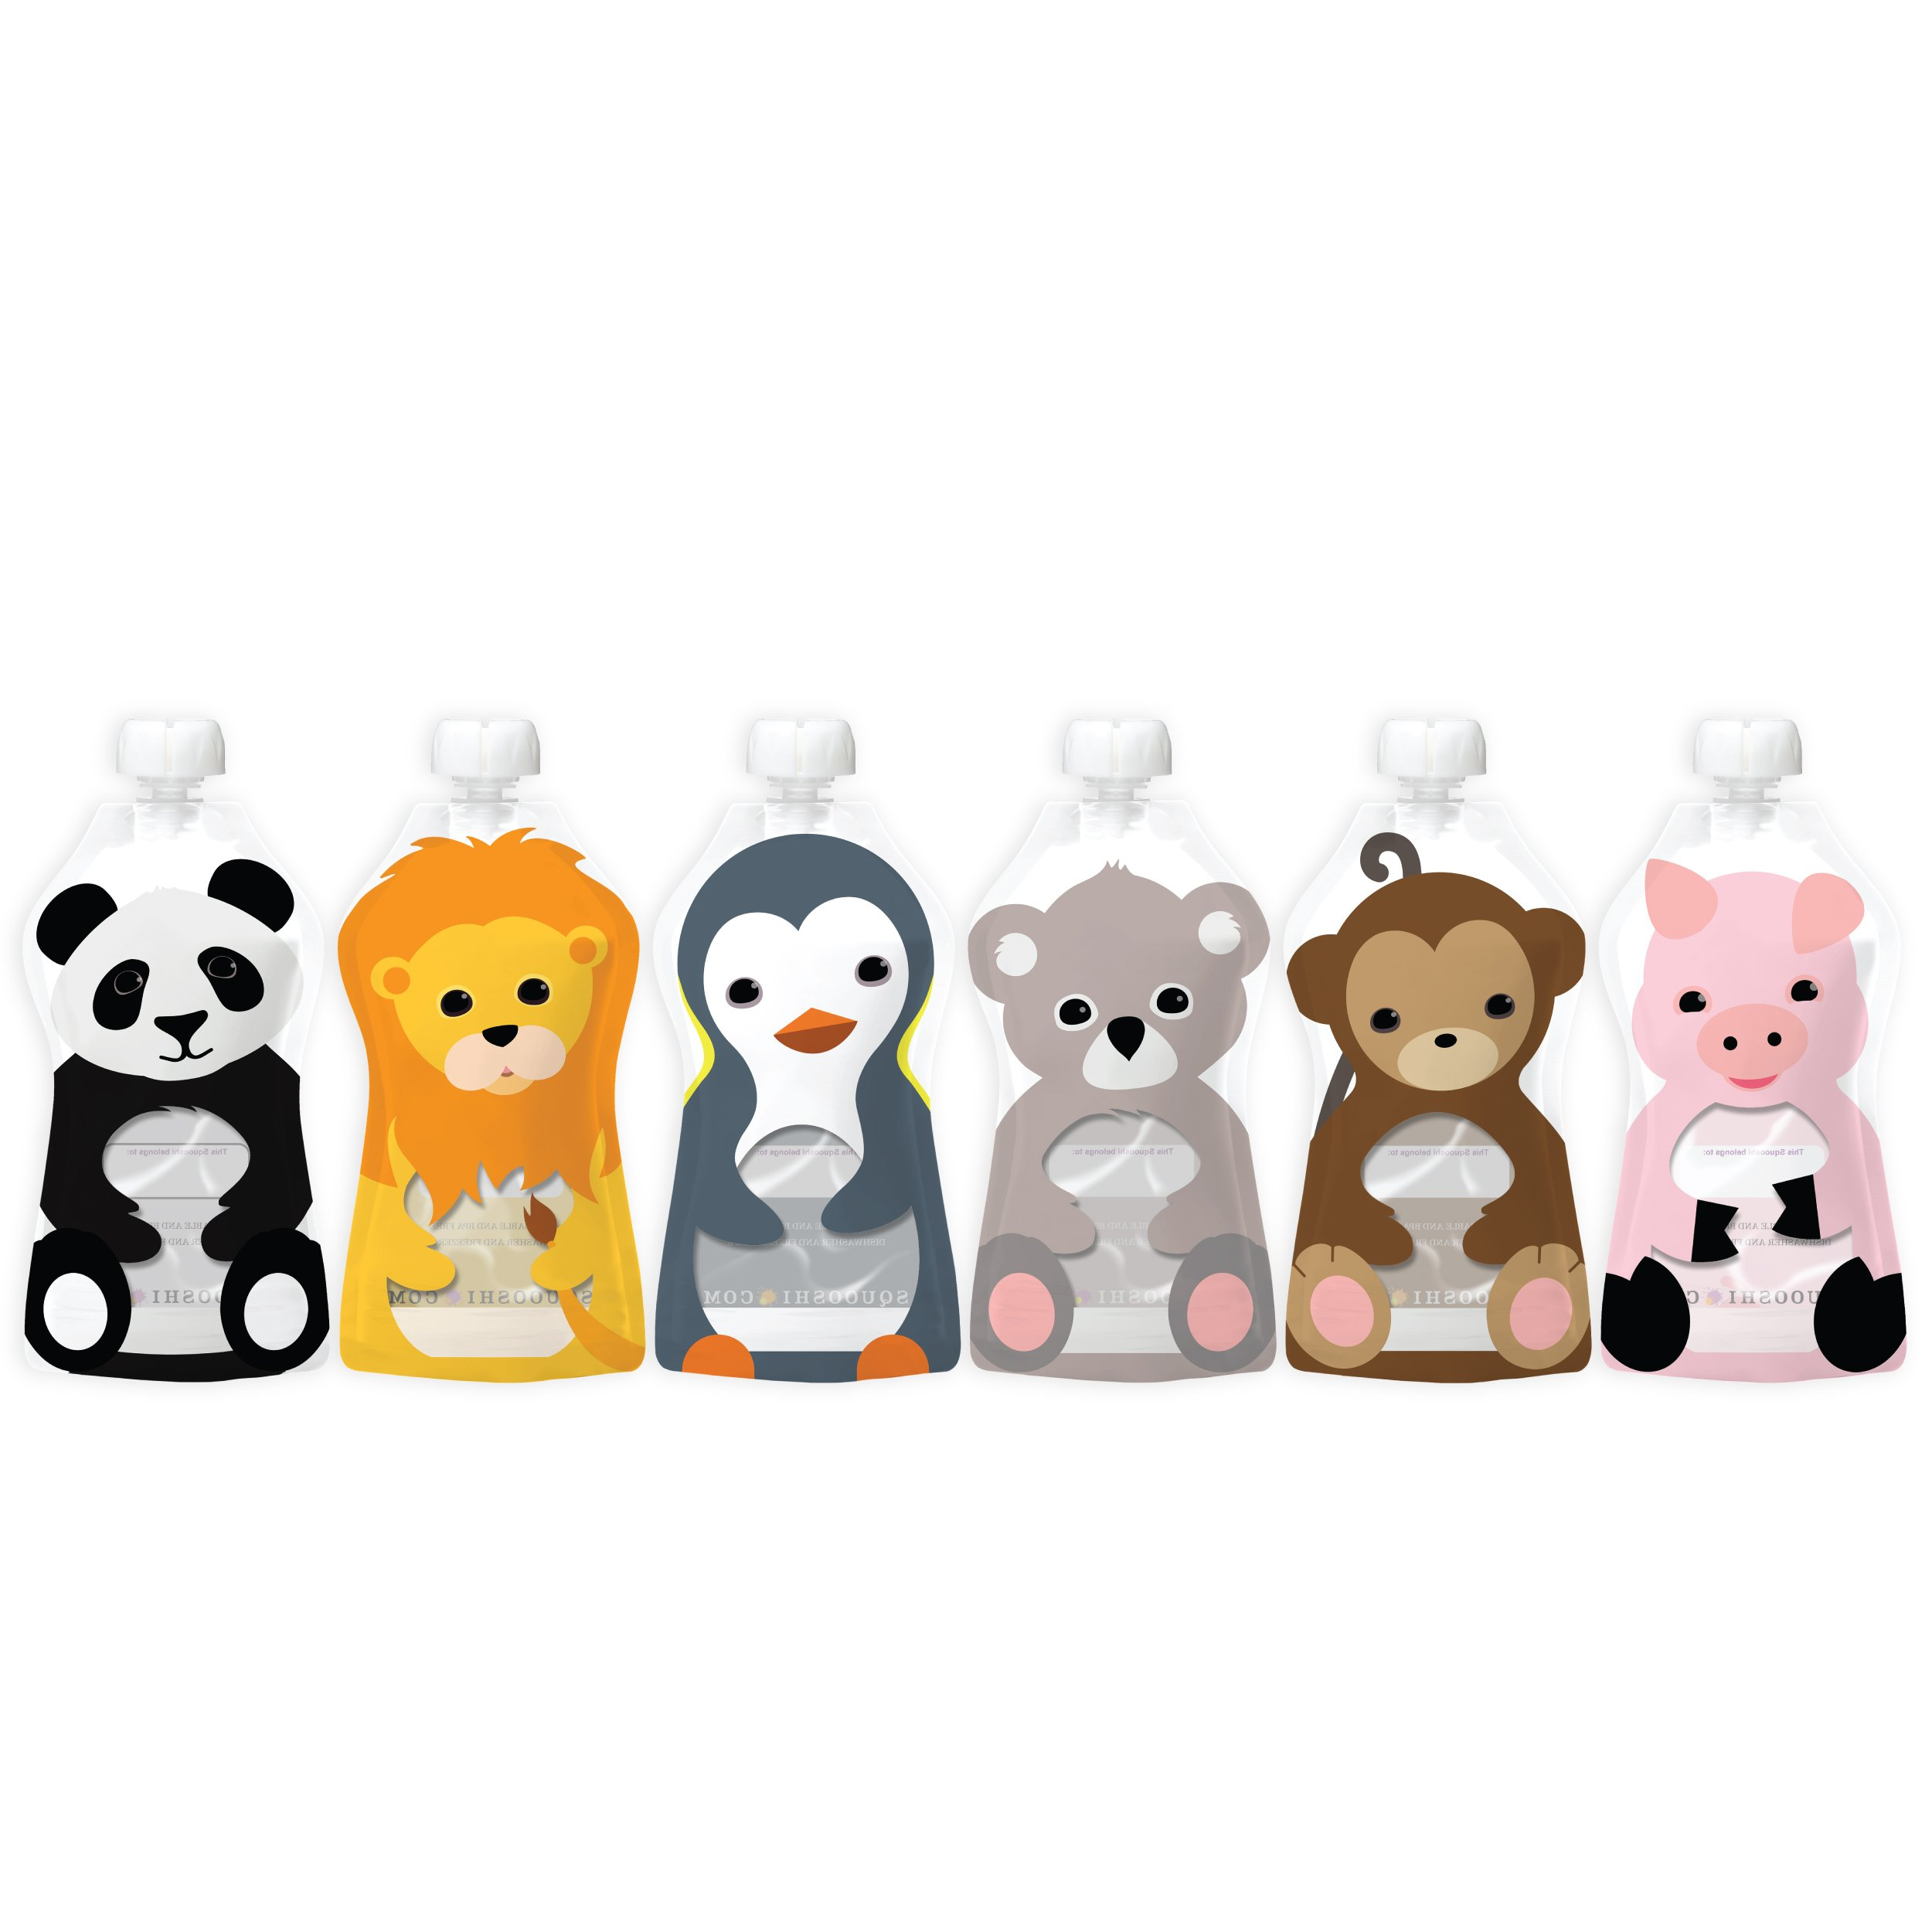 Squooshi Reusable Food Pouch | Animal 6 Pack | 6 Large Pouches